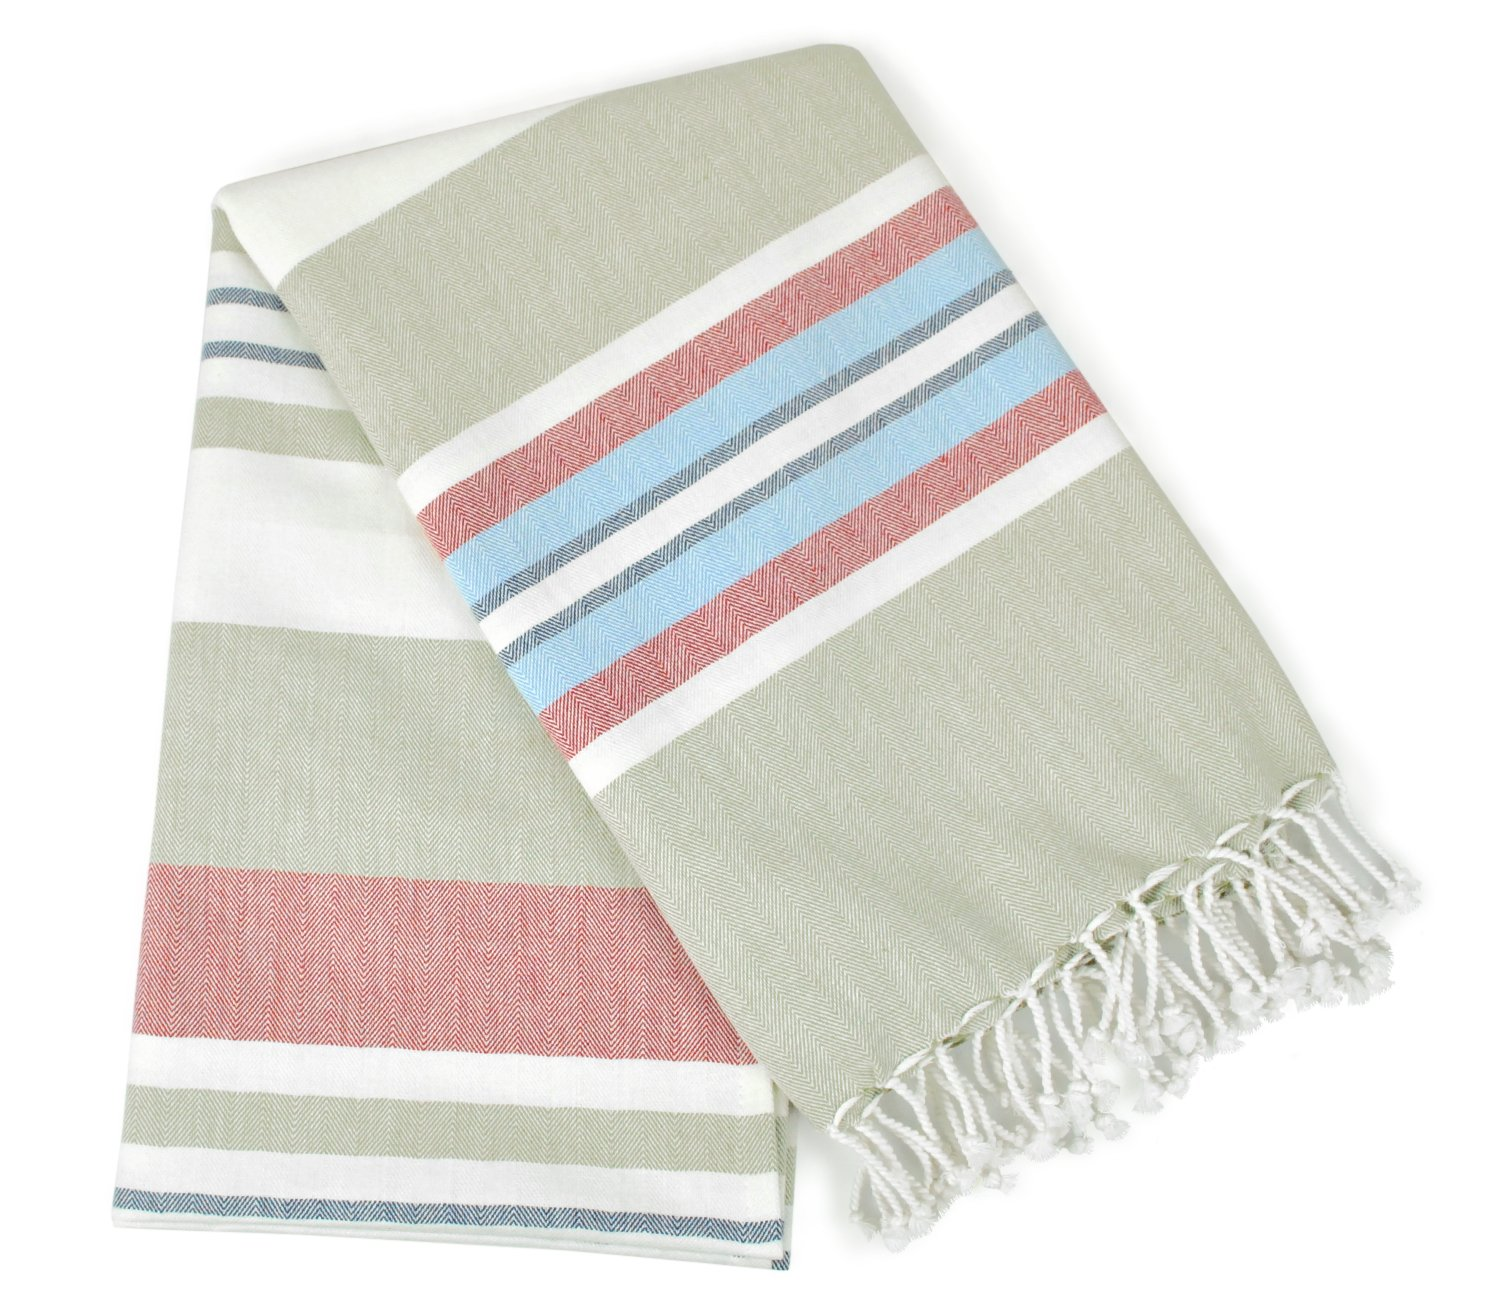 Turkish Peshtemal Large Beach Towel Set of 6 for Bath Spa Travel Yoga Gym Yacht Pool Pilates Pareo Fouta Shawl Blanket Tablecloth Camping Pack of 6 38 x 70 Absorbent-Quick Dry 100/% Cotton